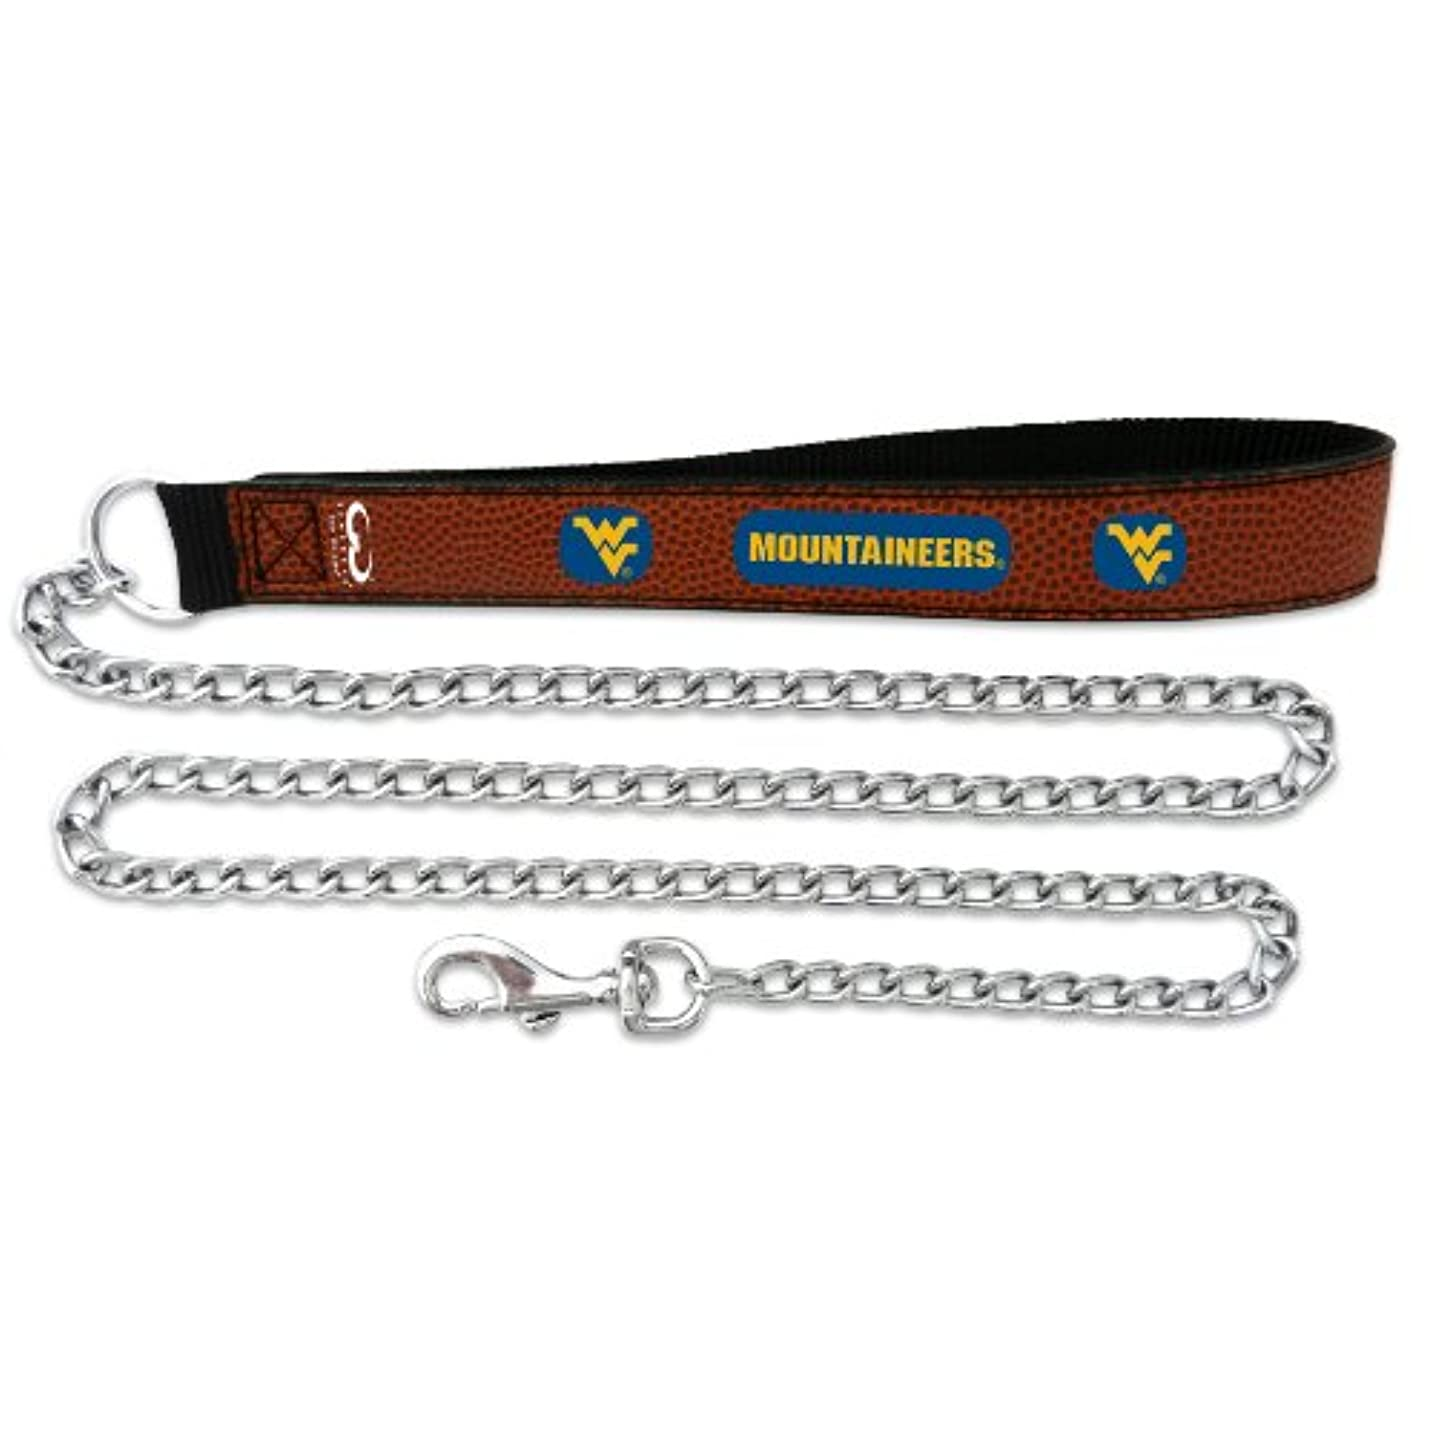 中級在庫悩みWest Virginia Mountaineers Football Leather 3.5mm Chain Leash - L